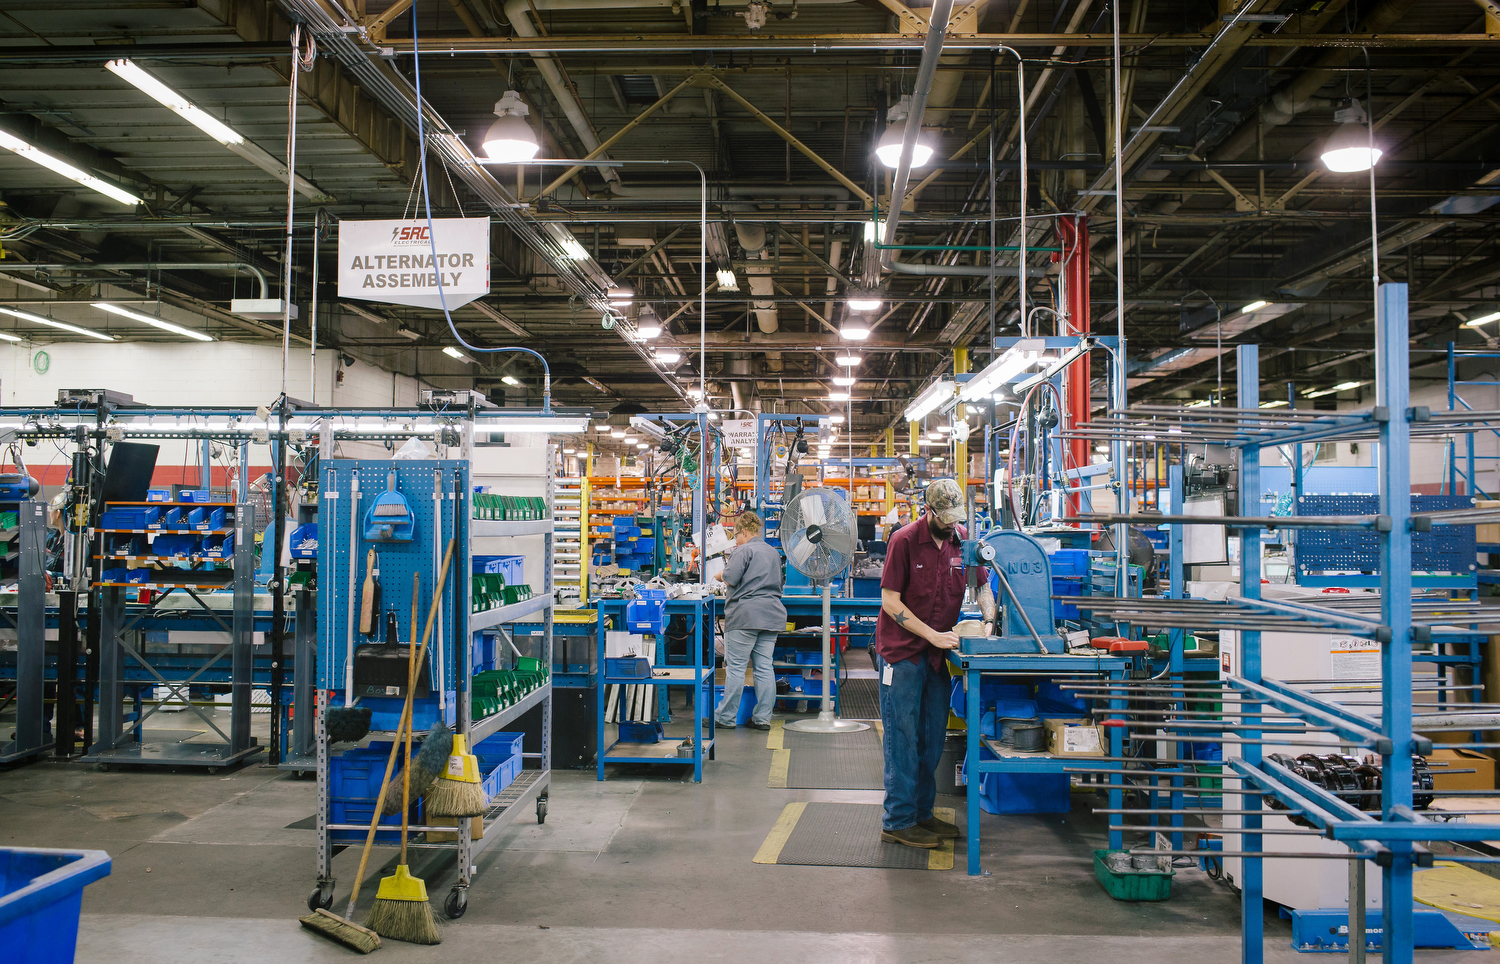 The alternator assembly area at the SRC Electrical facility on Sunshine in Springfield, Mo. on Nov. 22, 2016. Photo by Brad Zweerink.